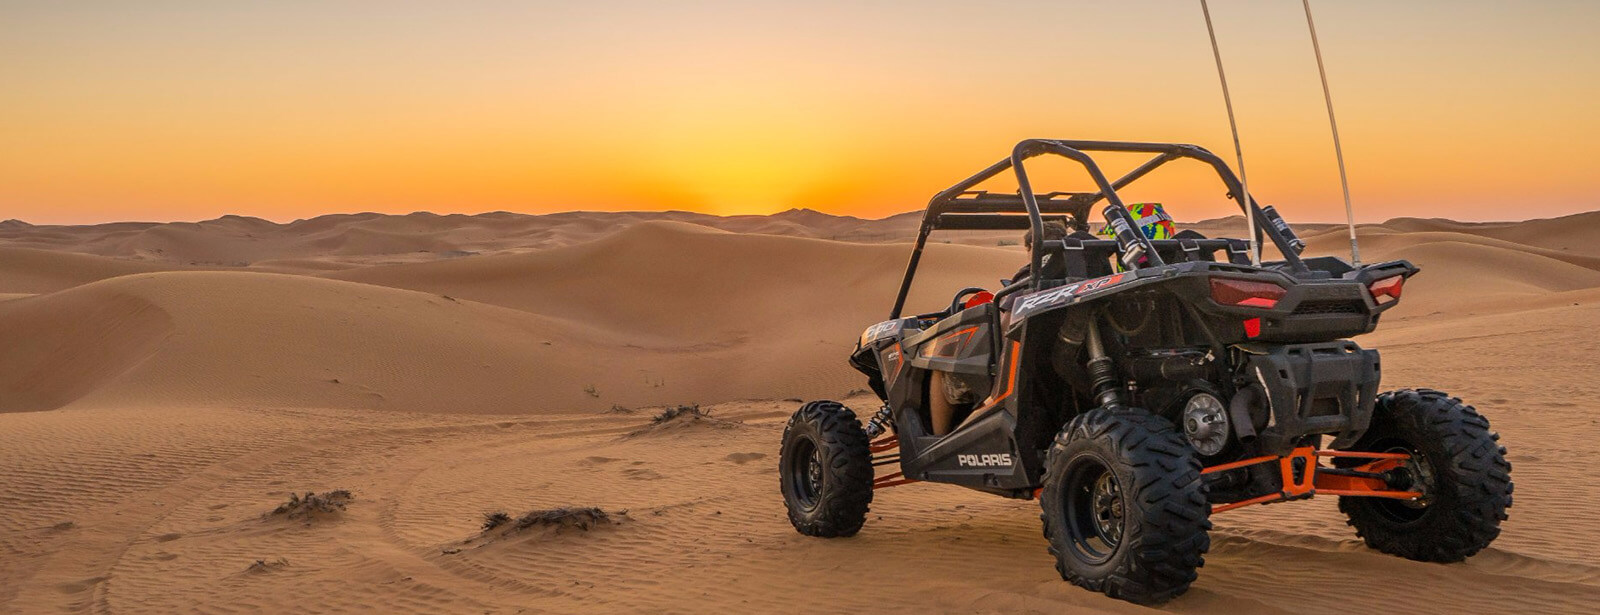 Dune Buggy Desert Safari Ride